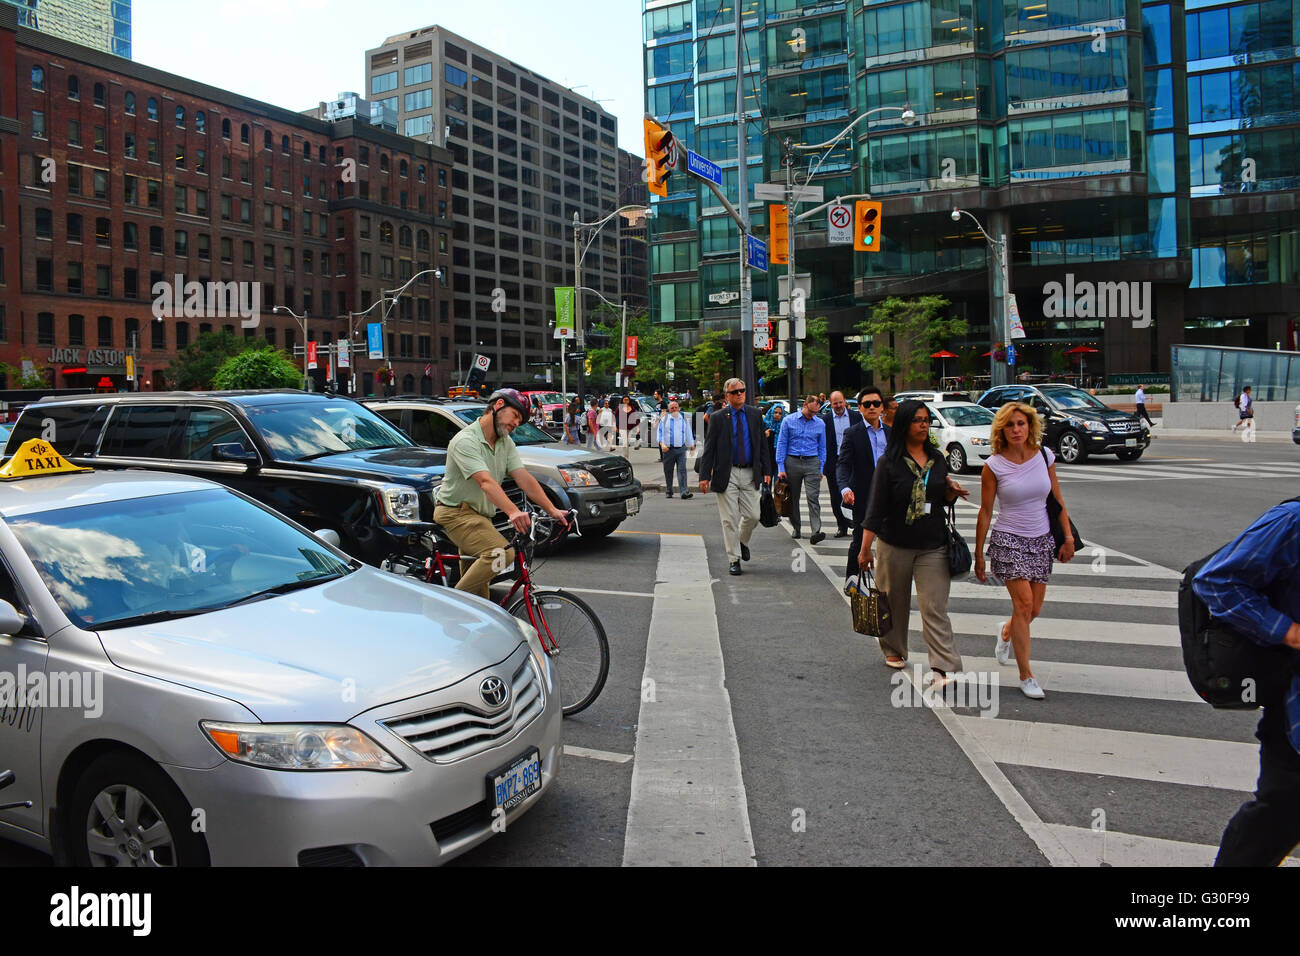 Toronto downtown after work rush - Stock Image